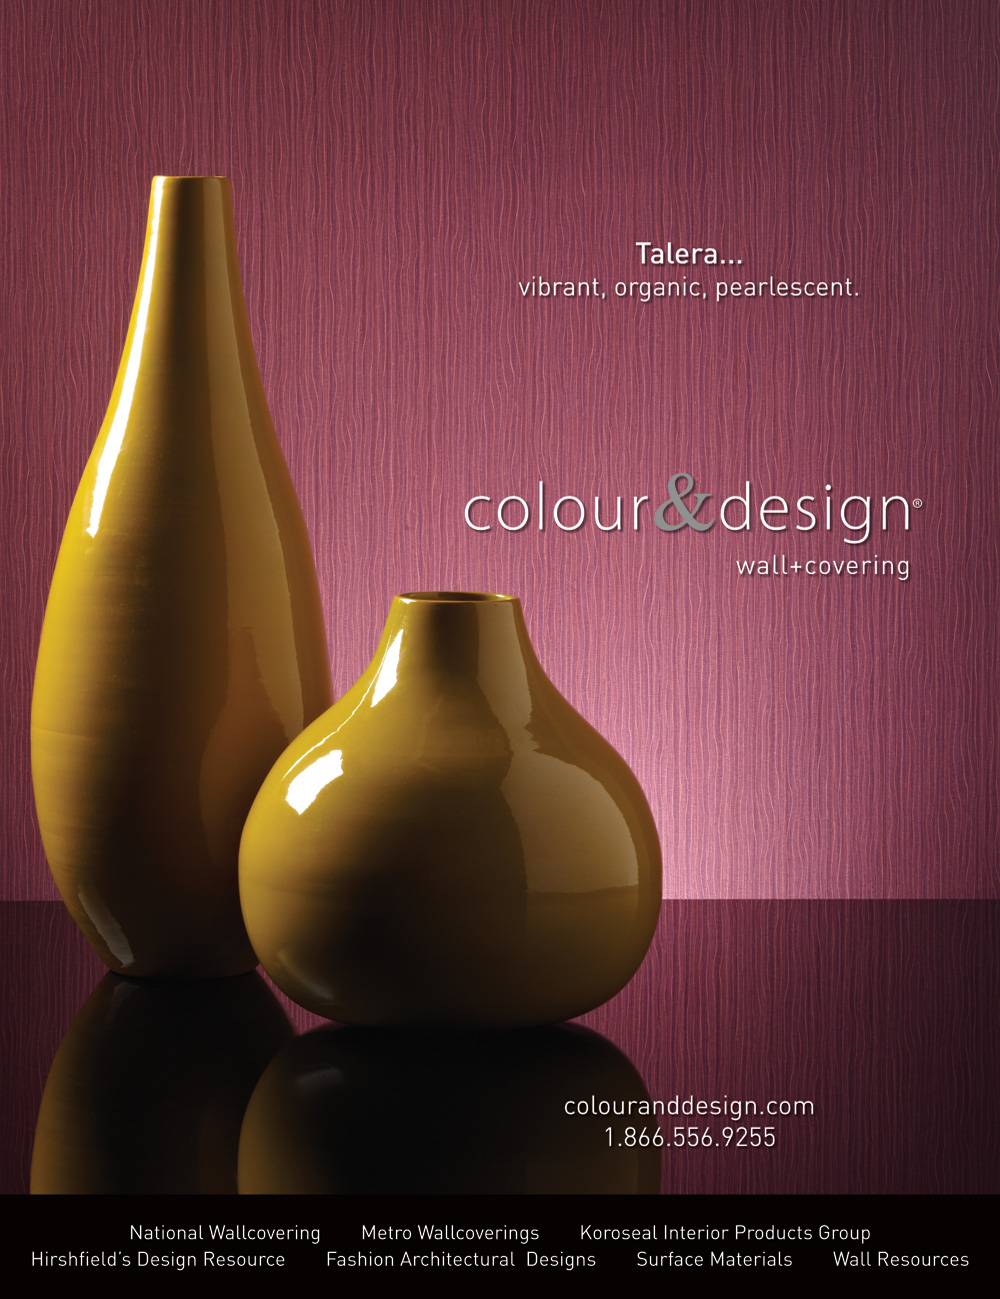 colour & design talera royal plum red commercial wallcovering with vase